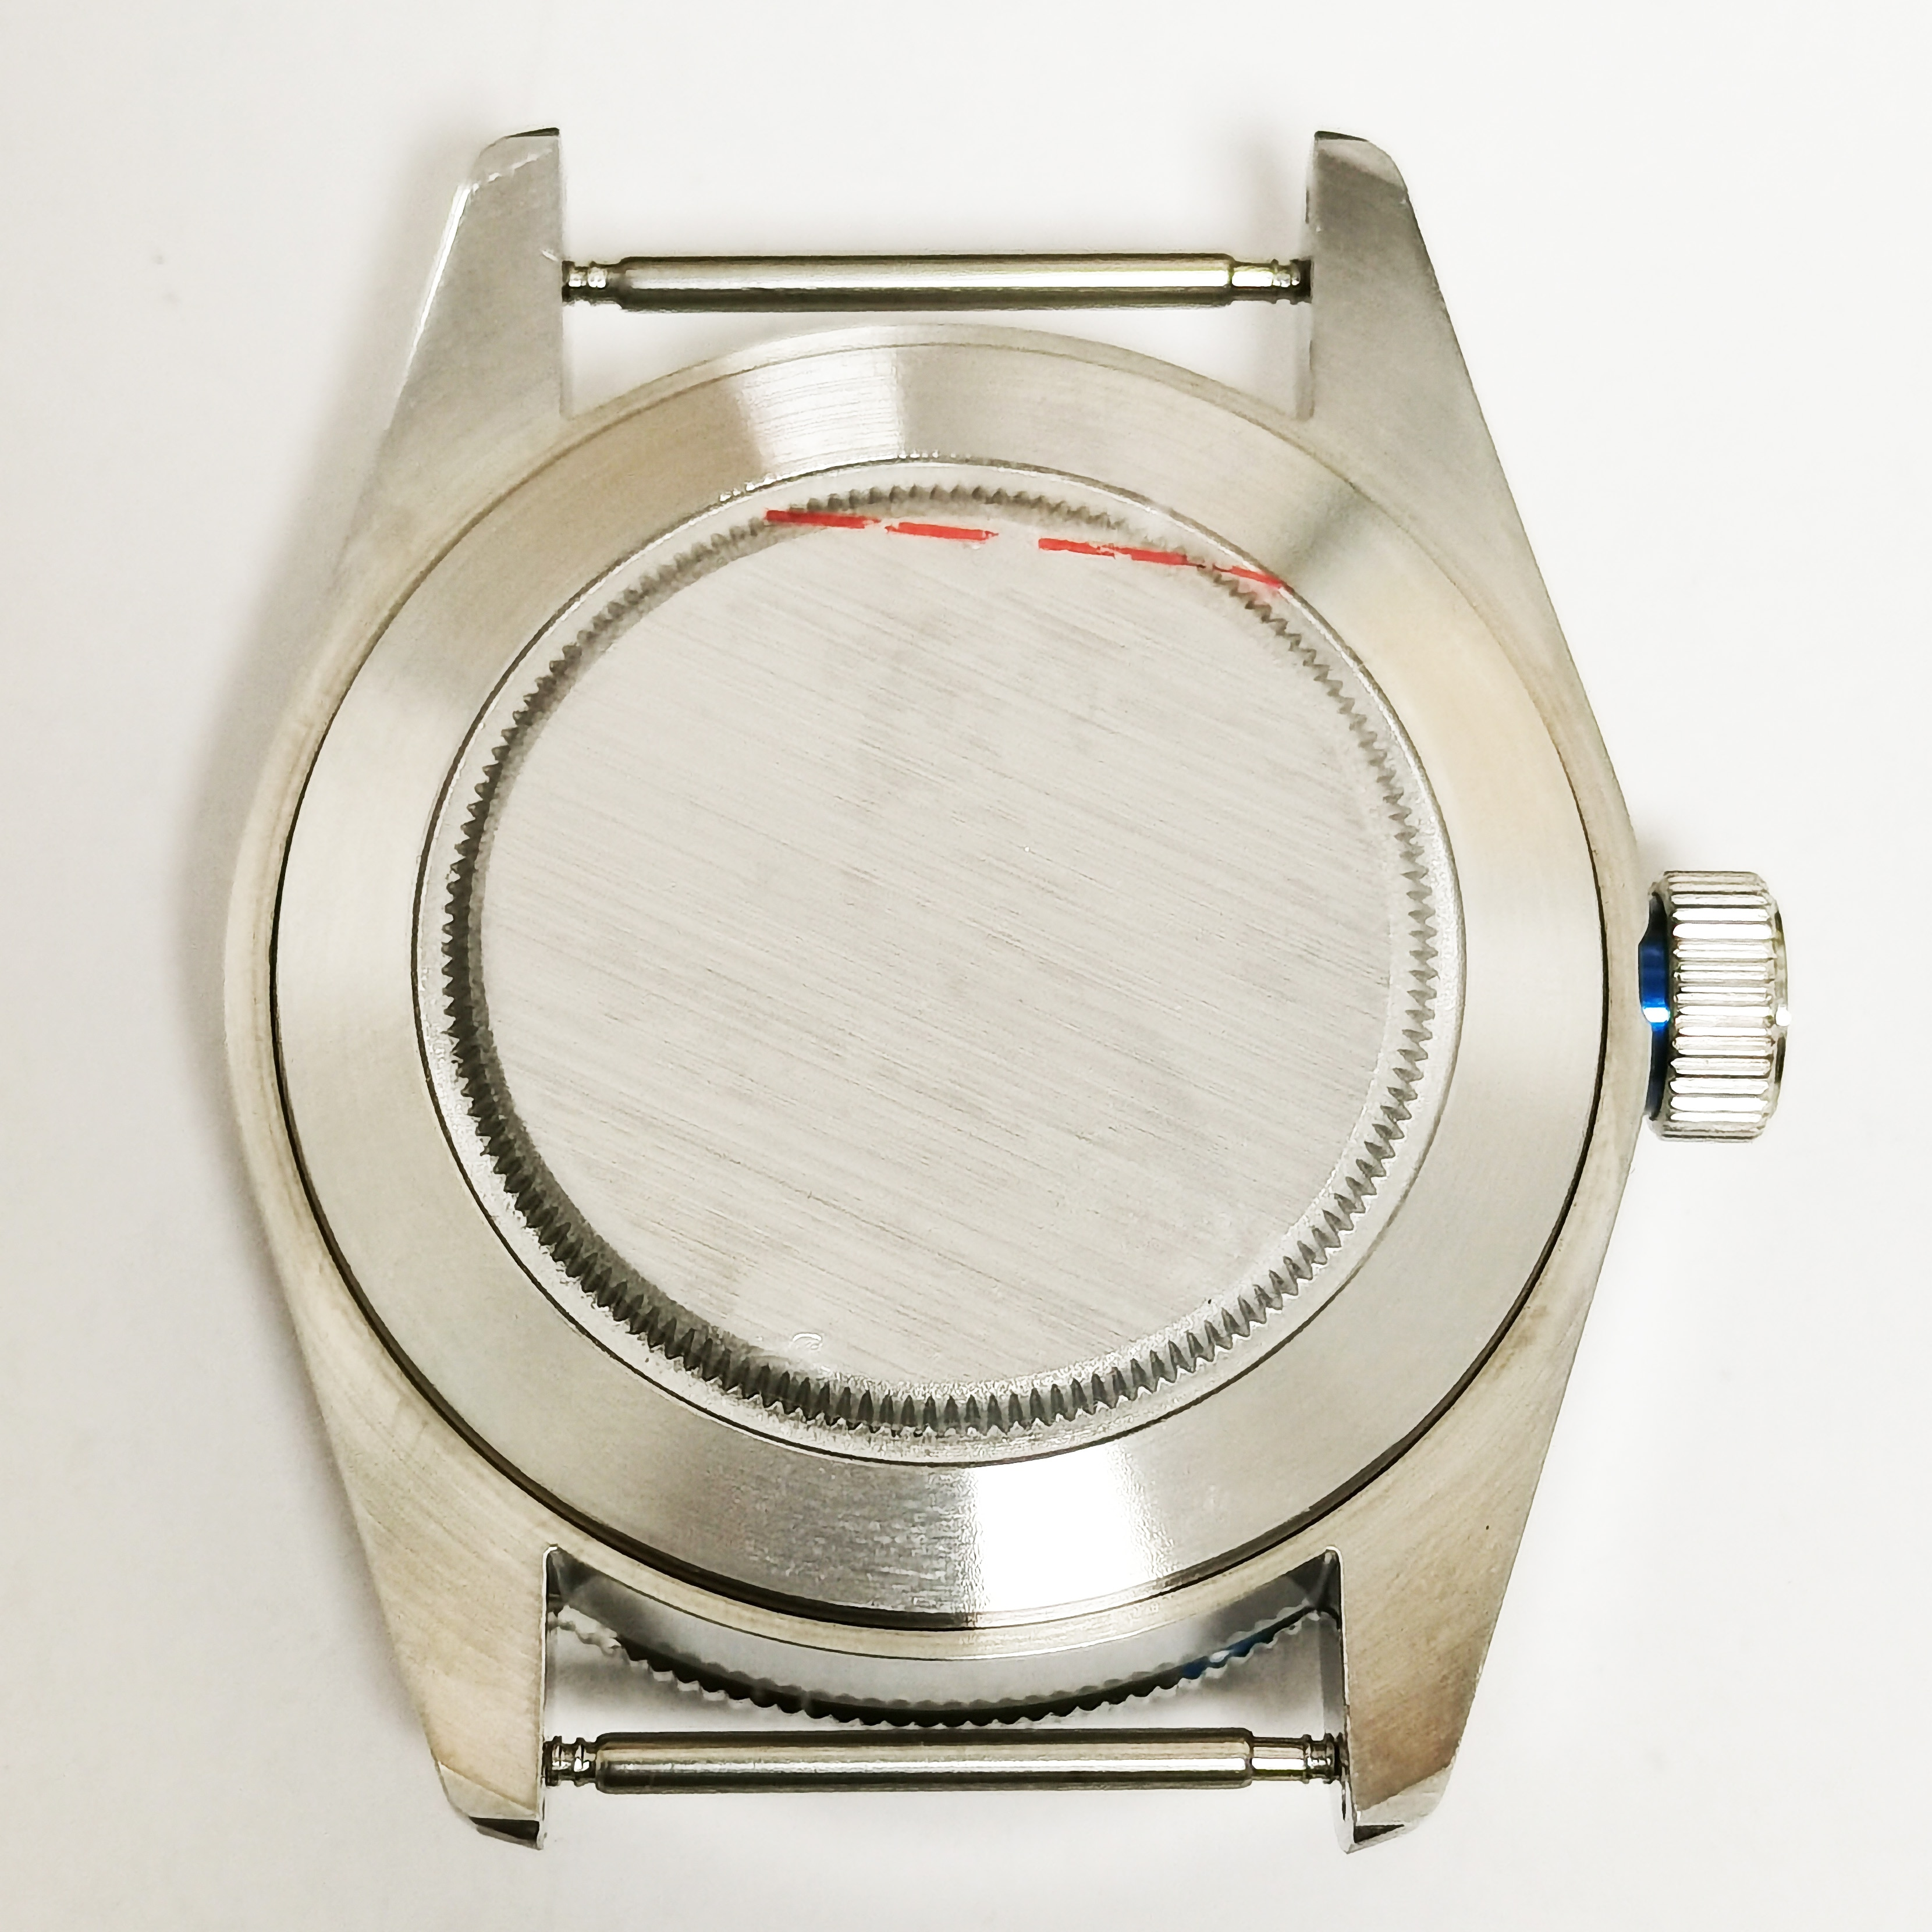 40MM 316 Stainless Steel Man's Watch  Case Dial And Hands Set For Automatic Movement NH35 NH36 MIYOTA8200 ETA2836 enlarge